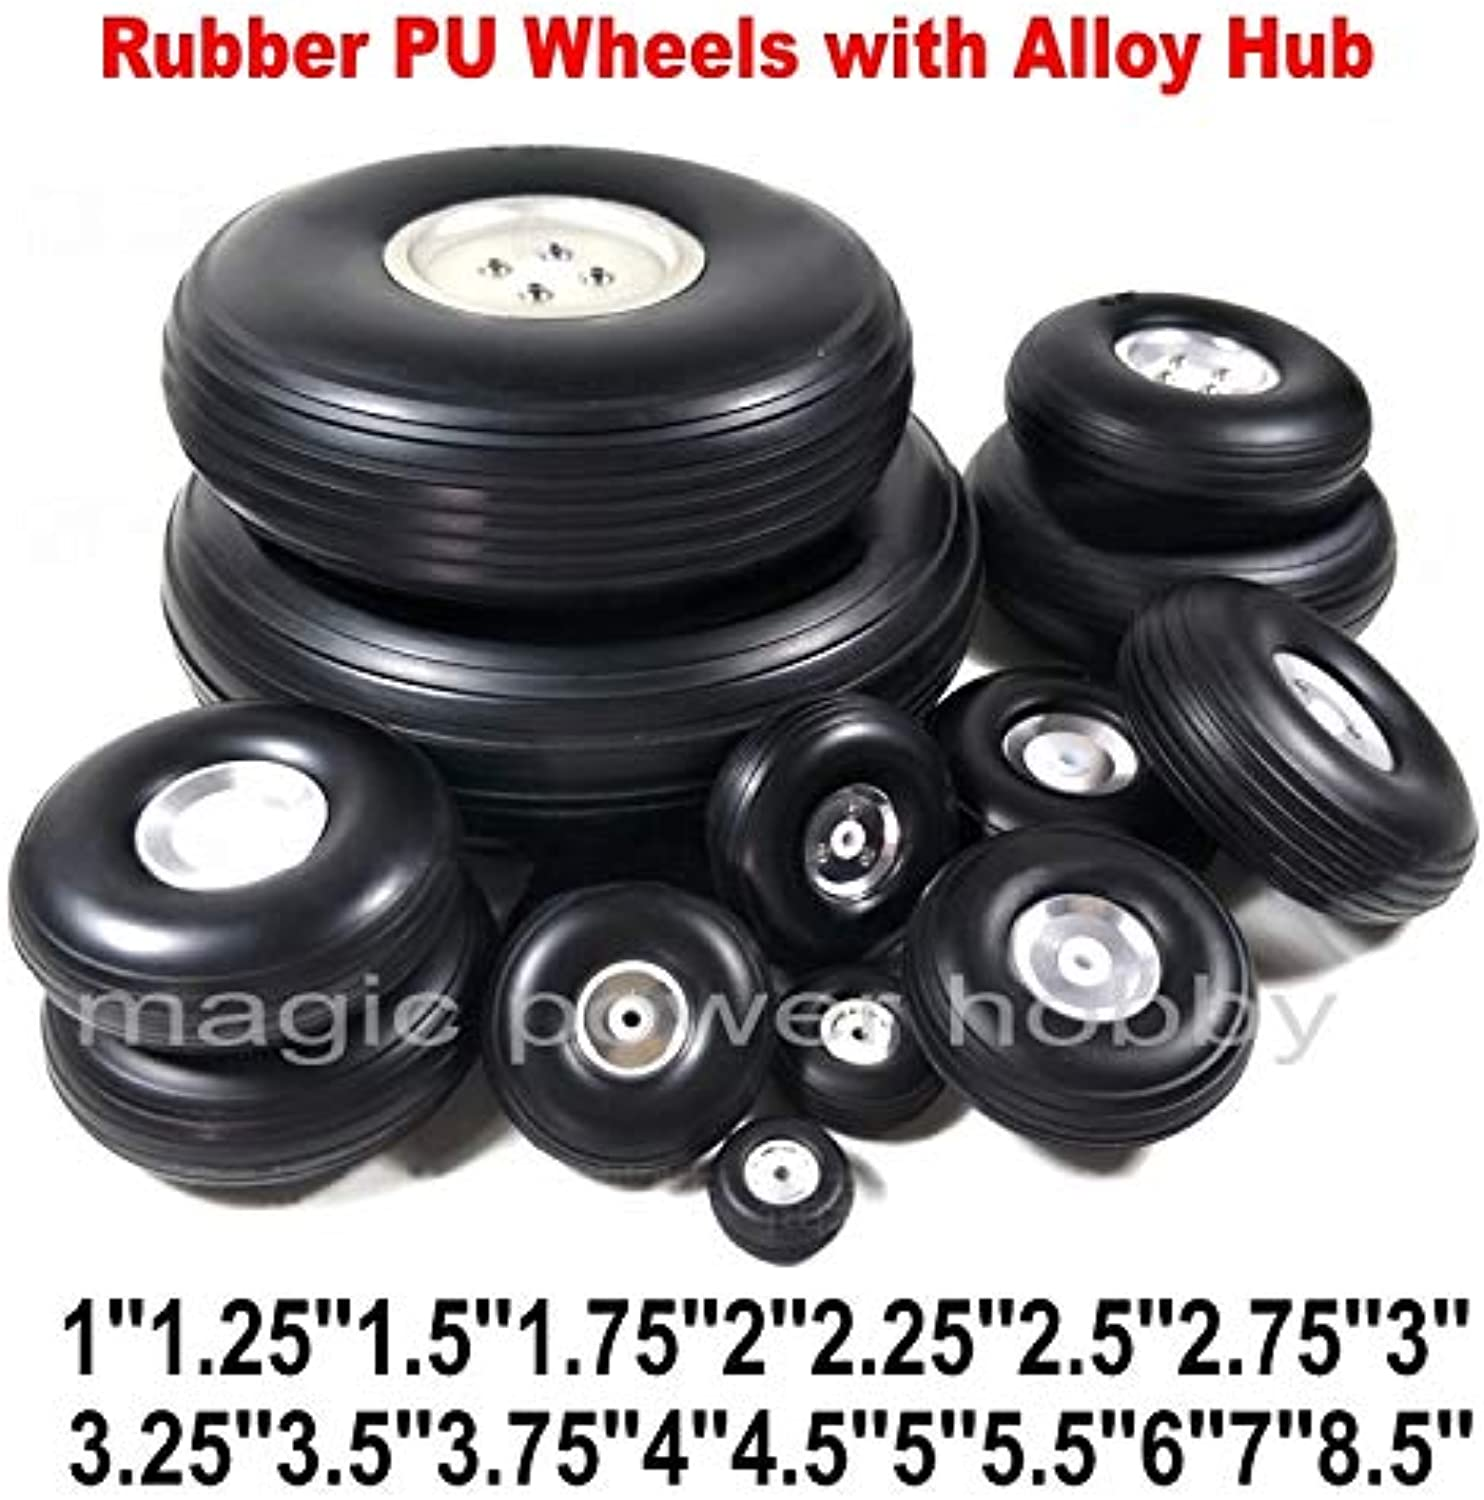 Laliva Airplane Rubber Tail Wheels PU with Alloy Hub 1''8'' Inch for RC Plane Replacement Wheels Wholesale Price  (color  2pcs Type4)